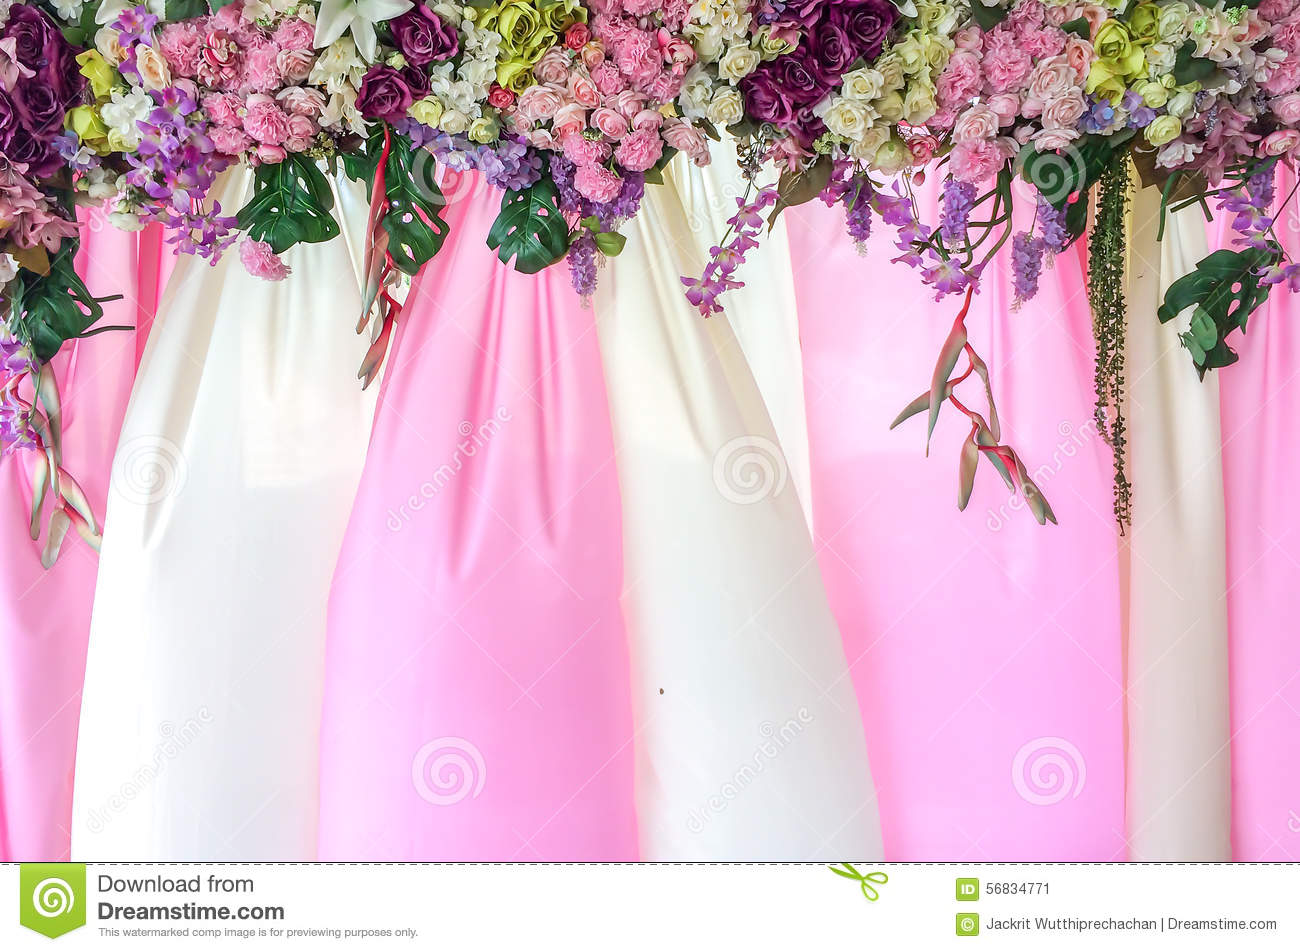 Beautiful Pink and White Textile Backdrop with Flowers Cover used as Template